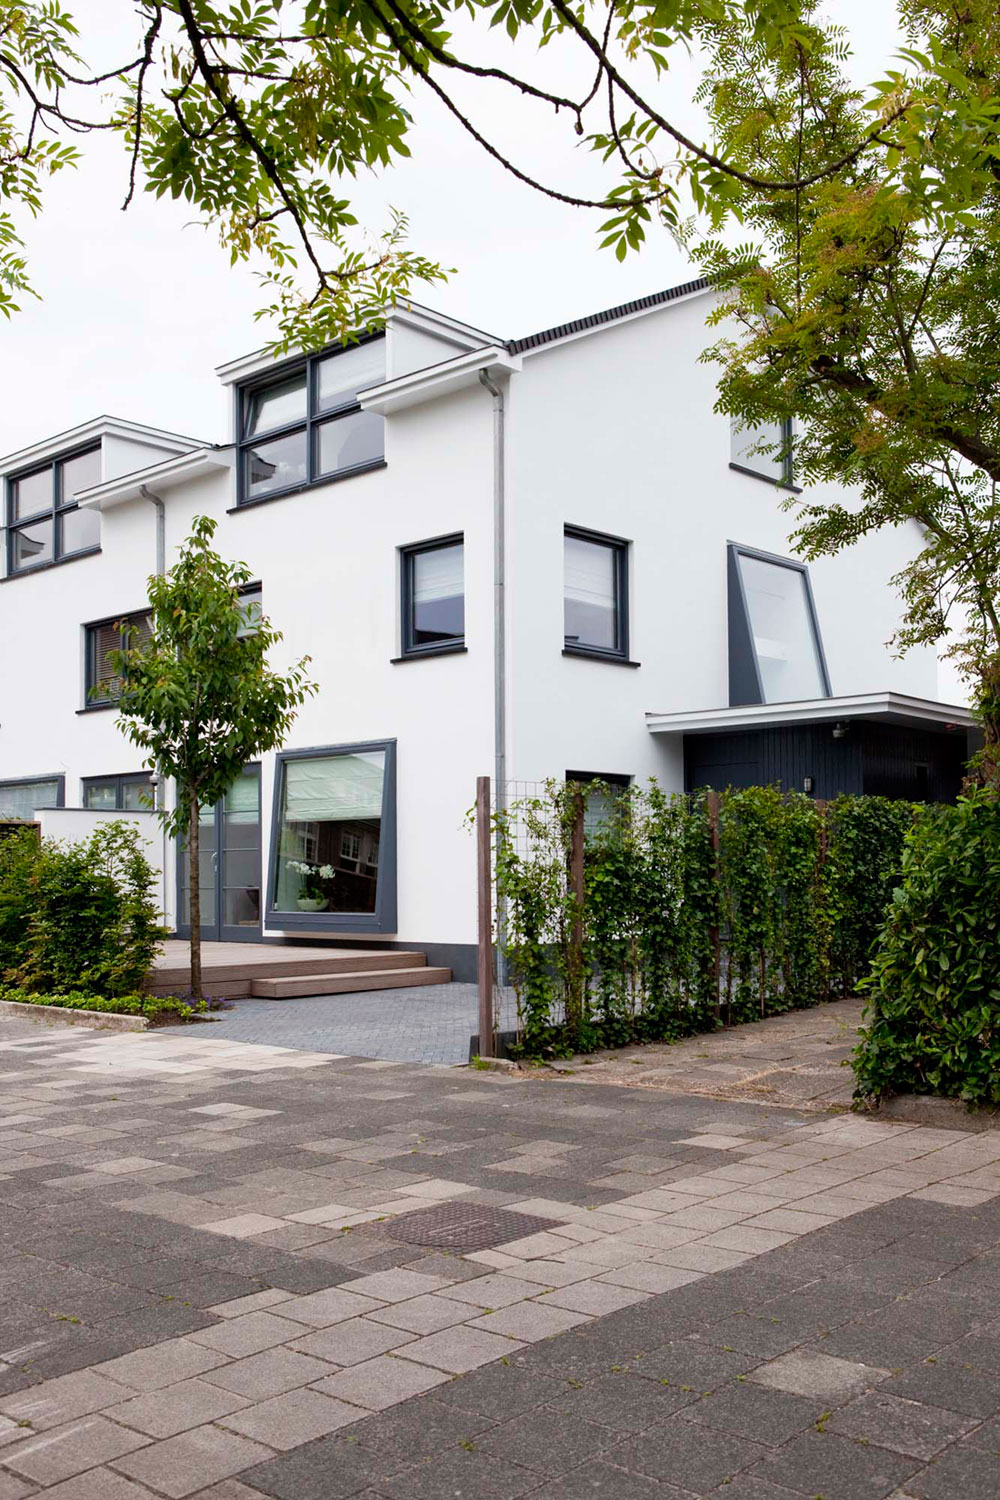 Amsterdam Residential Home by Sies Home Interior Design (1)